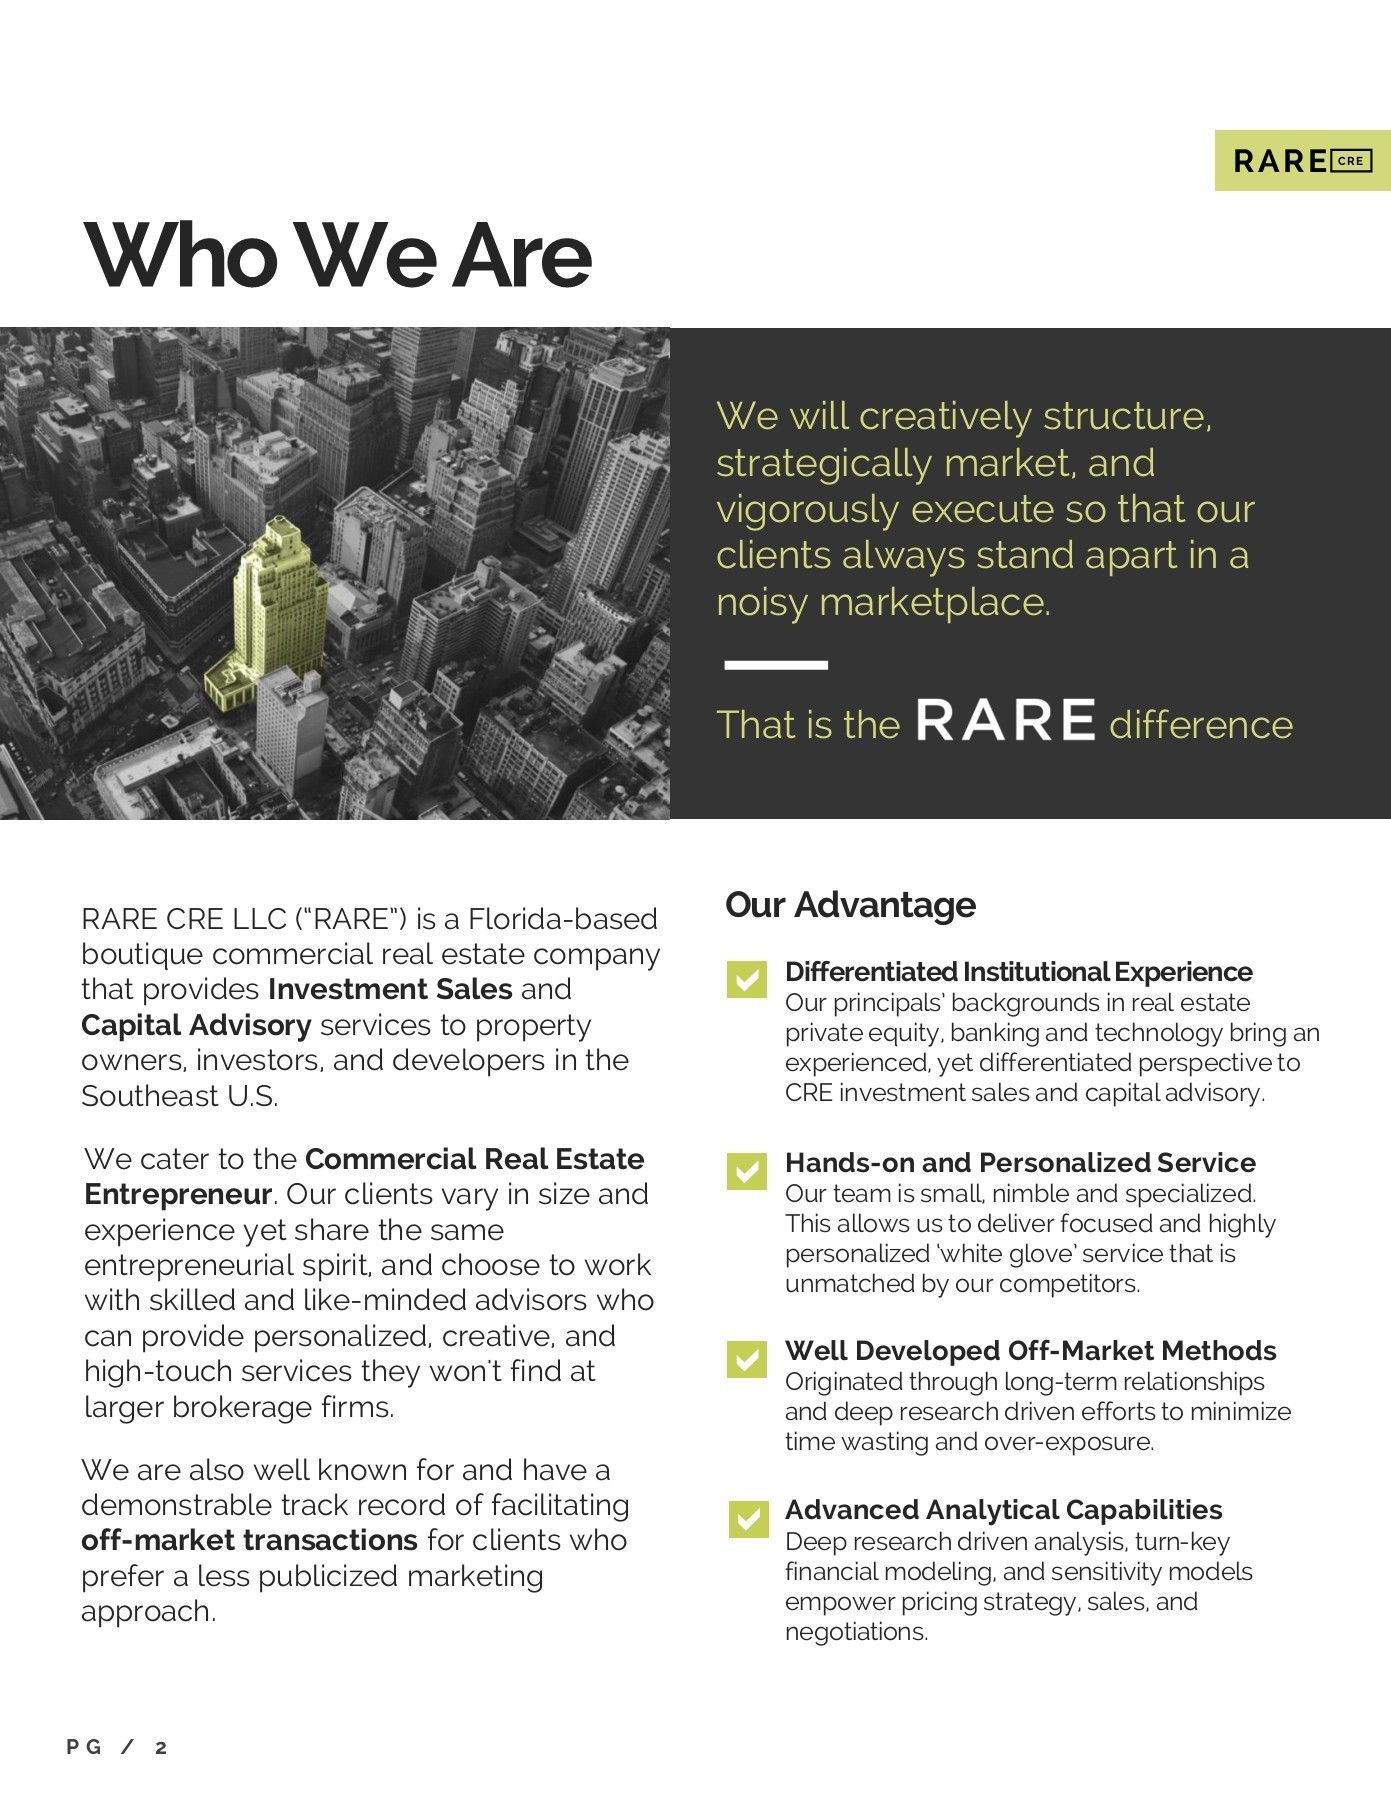 RARE CRE Company Overview | PubHTML5